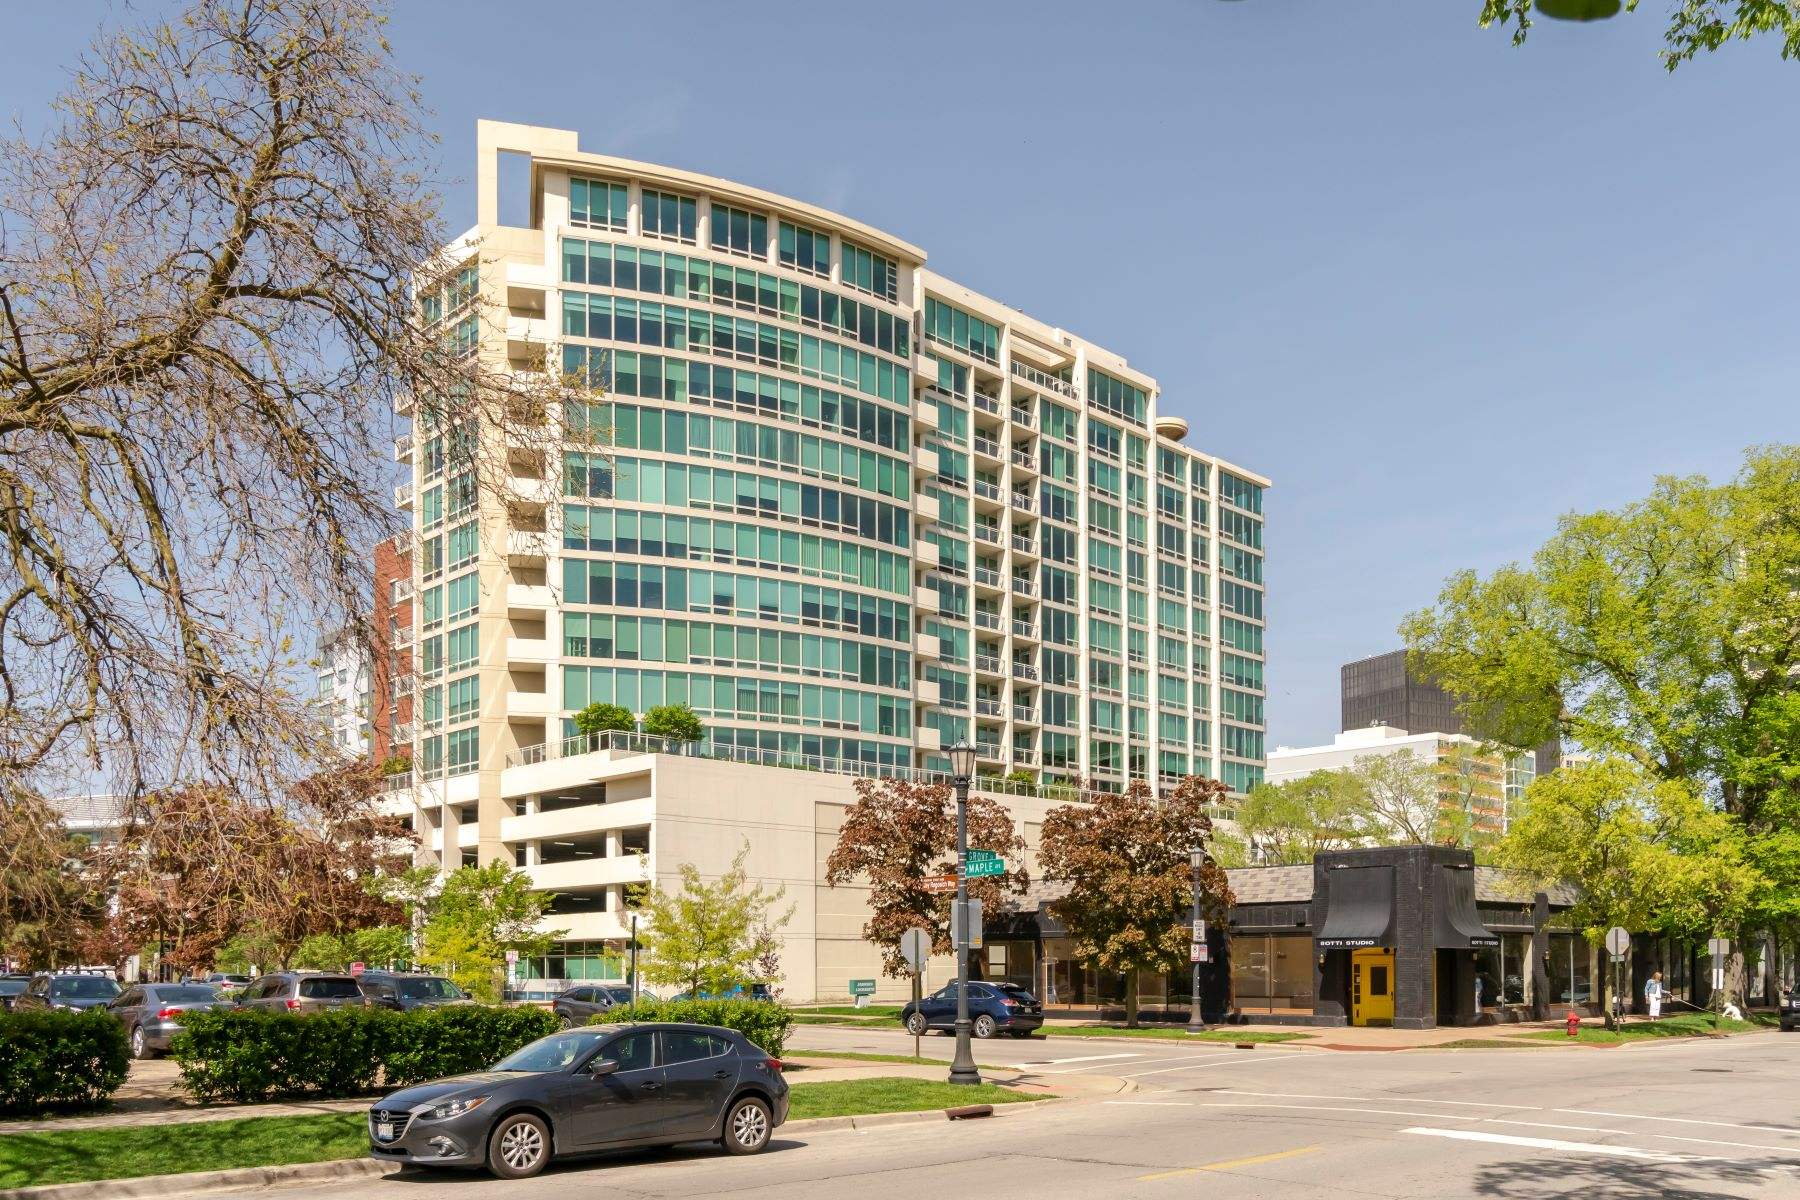 Single Family Homes für Verkauf beim Exceptional Penthouse in Evanston's Premier Intimate Building 1570 Elmwood Avenue Unit 1503, Evanston, Illinois 60201 Vereinigte Staaten